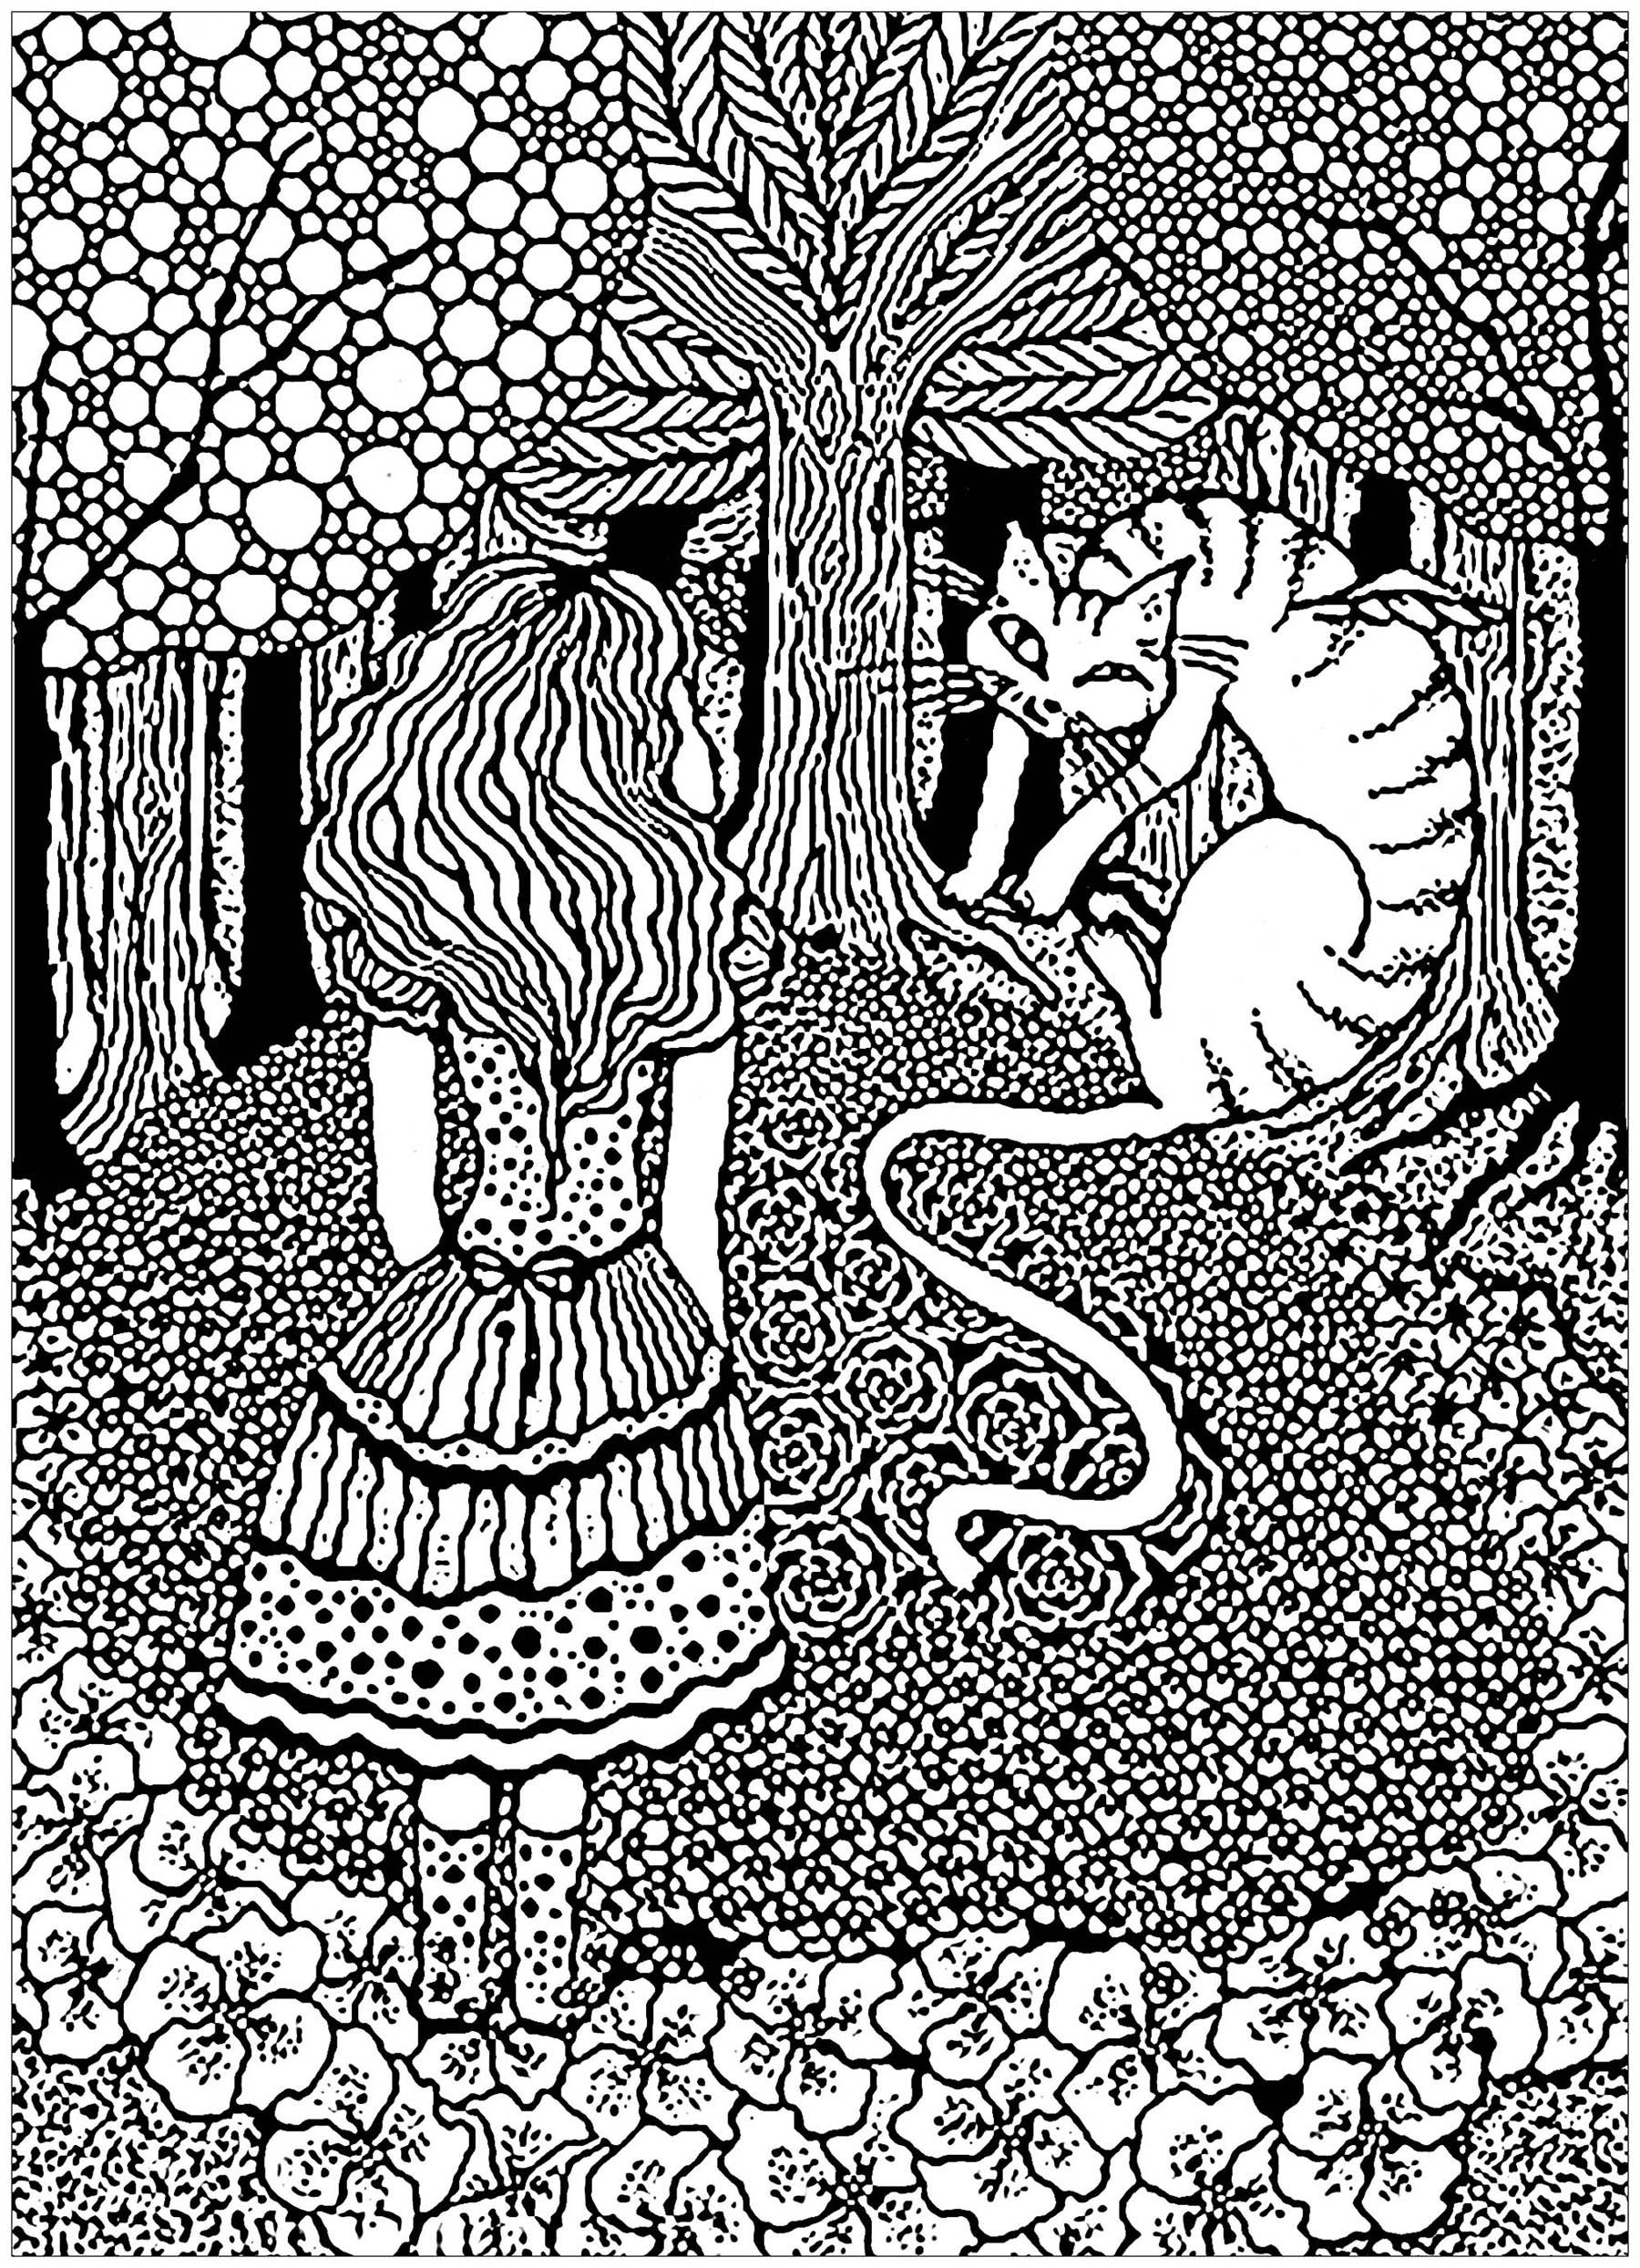 A Complex Coloring Page With Alice In Wonderland The Cheshire Cat